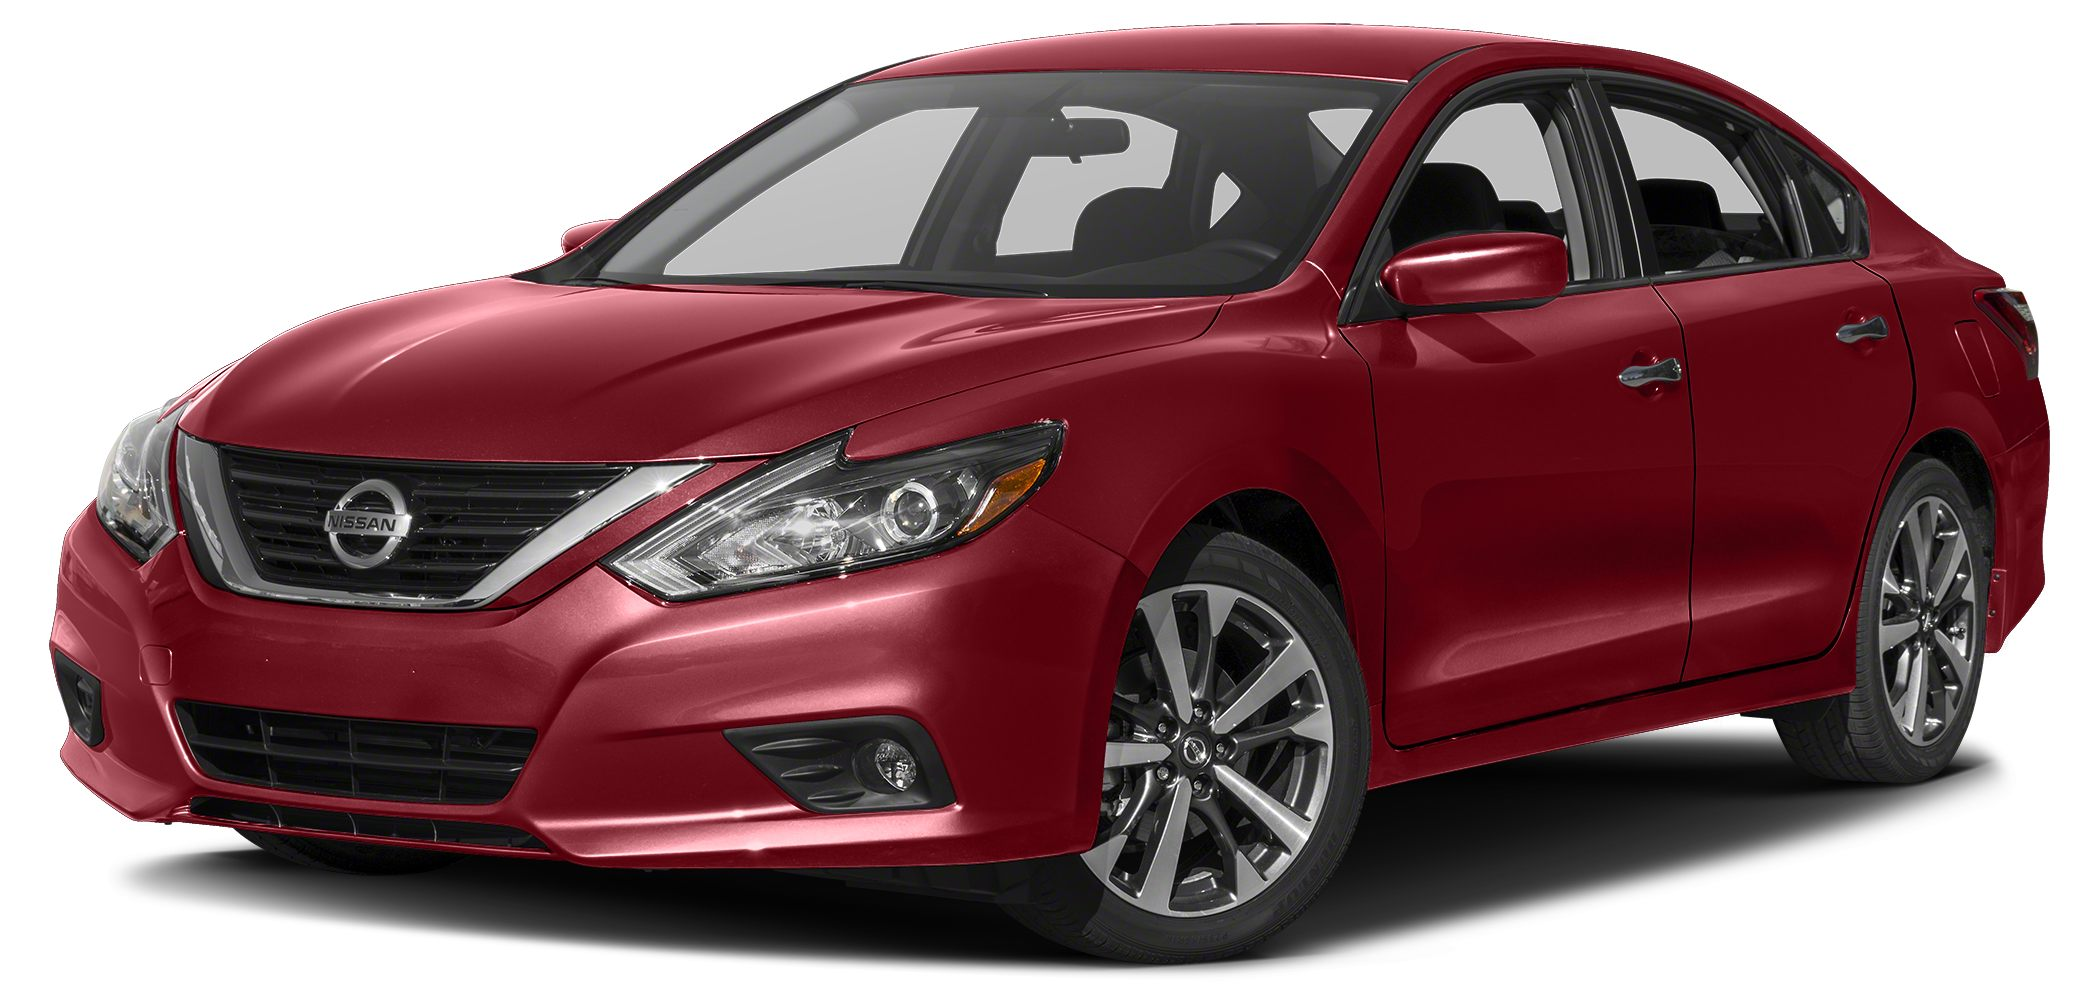 2017 Nissan Altima 25 SR This 2017 Nissan ALTIMA SR will sell fast Save money at the pumps know